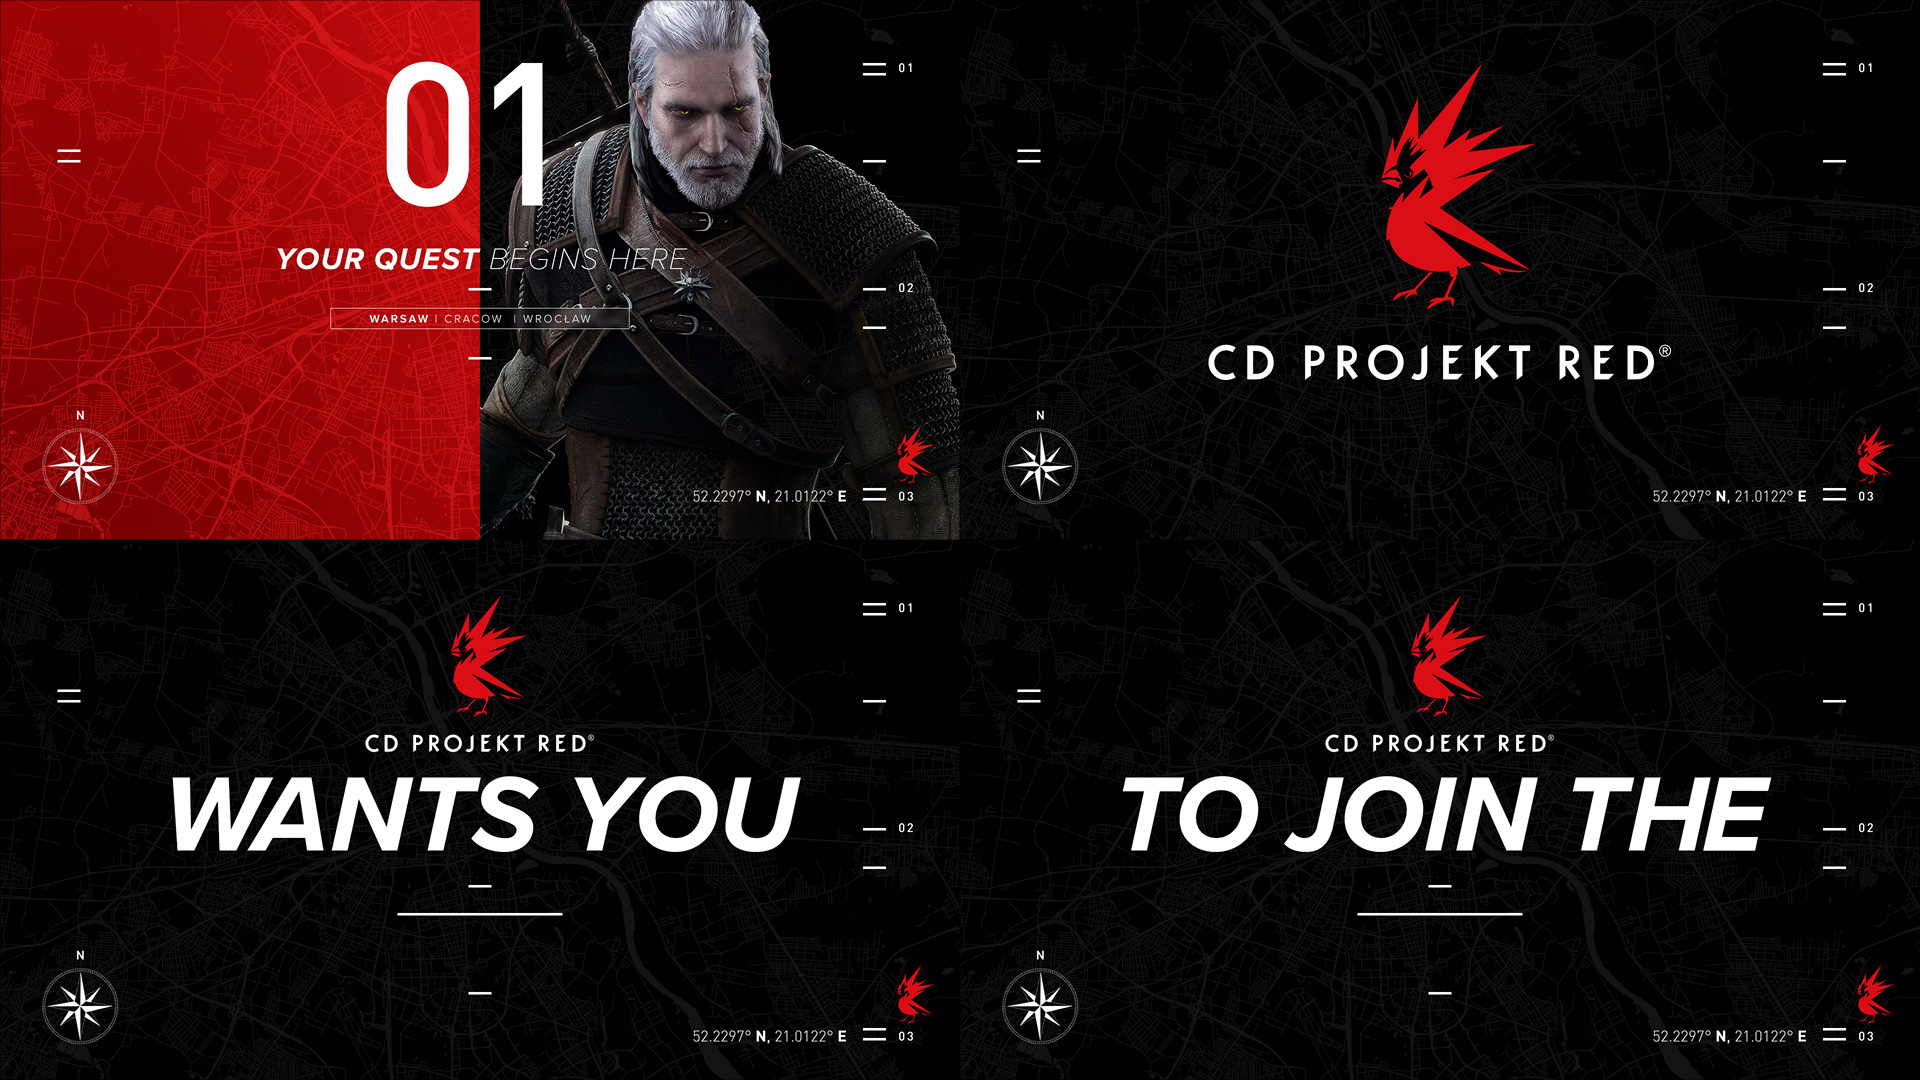 CD Projekt Red logo with text on black background